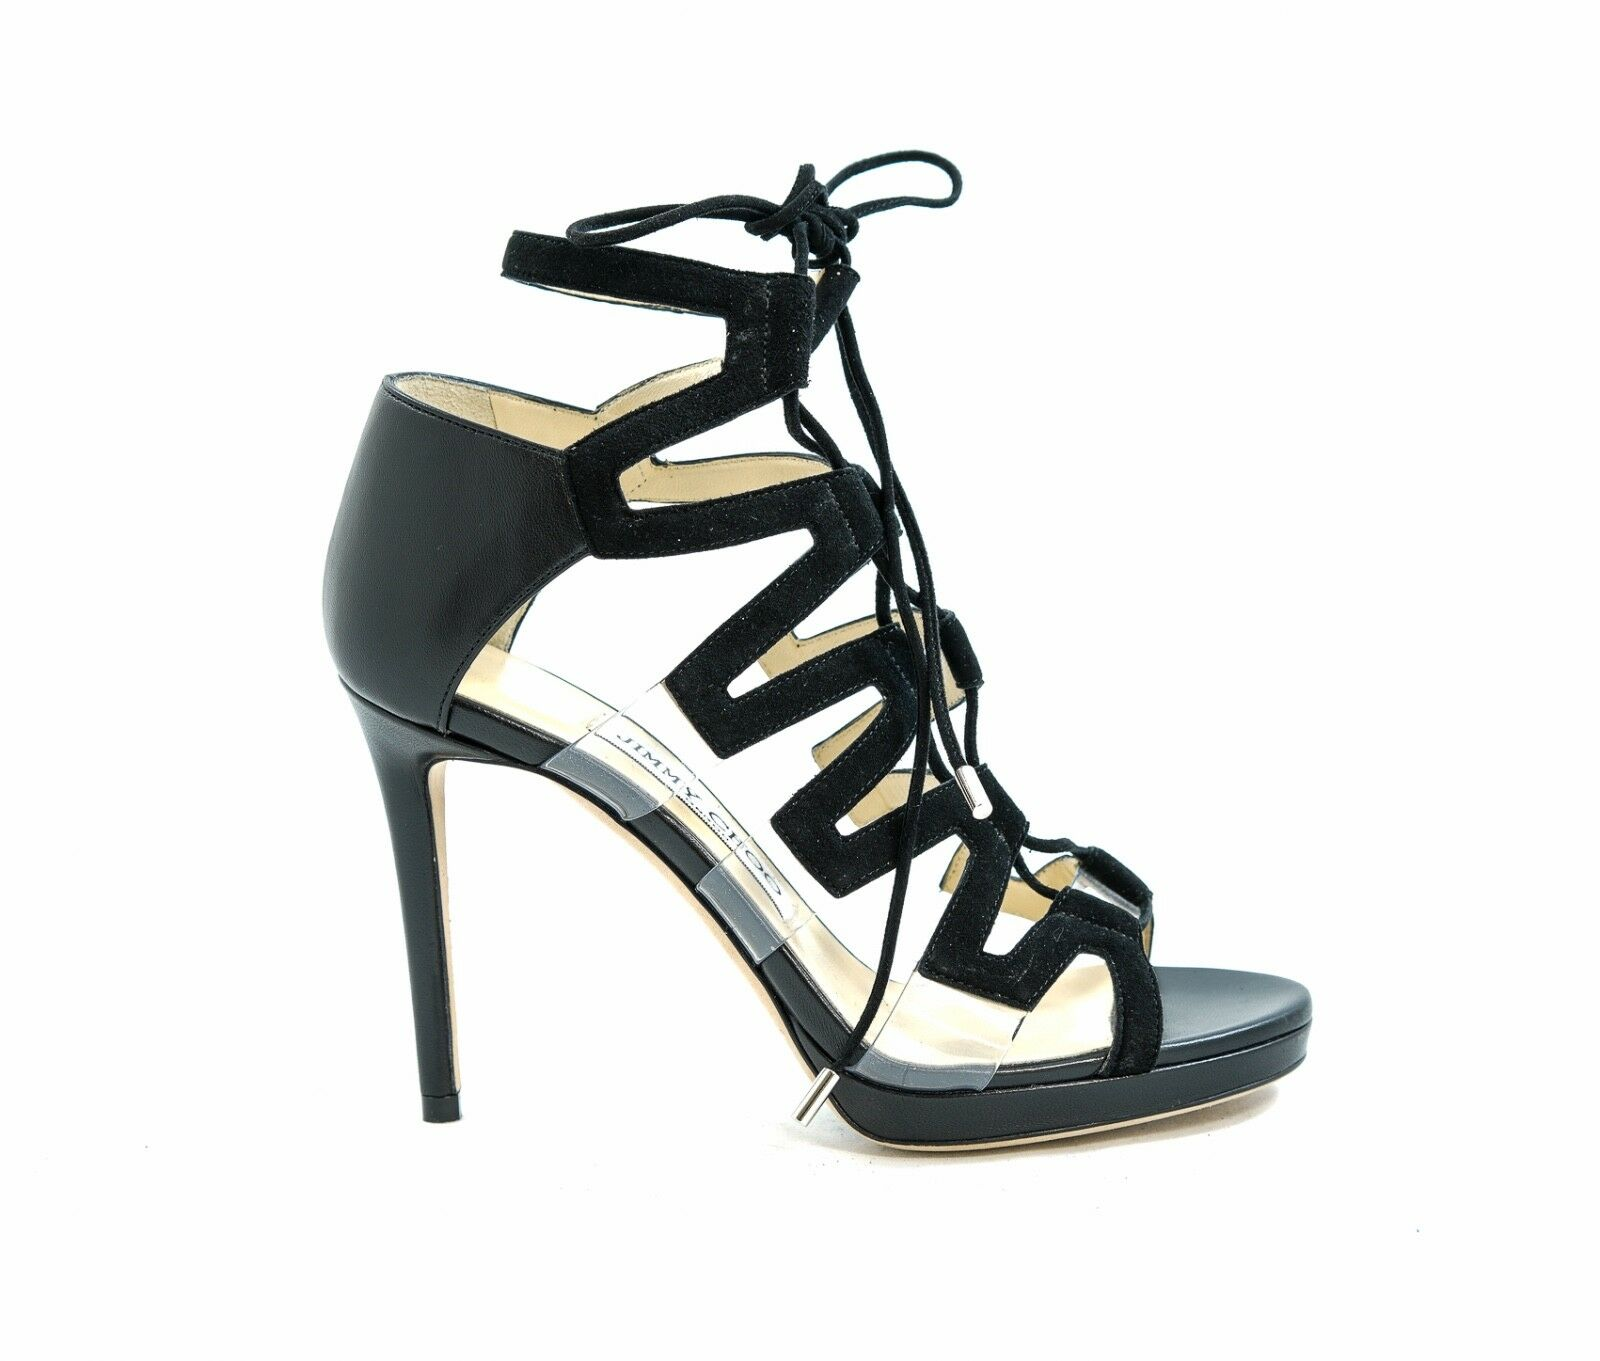 New in Box Jimmy Choo DANI100 Black Sandal